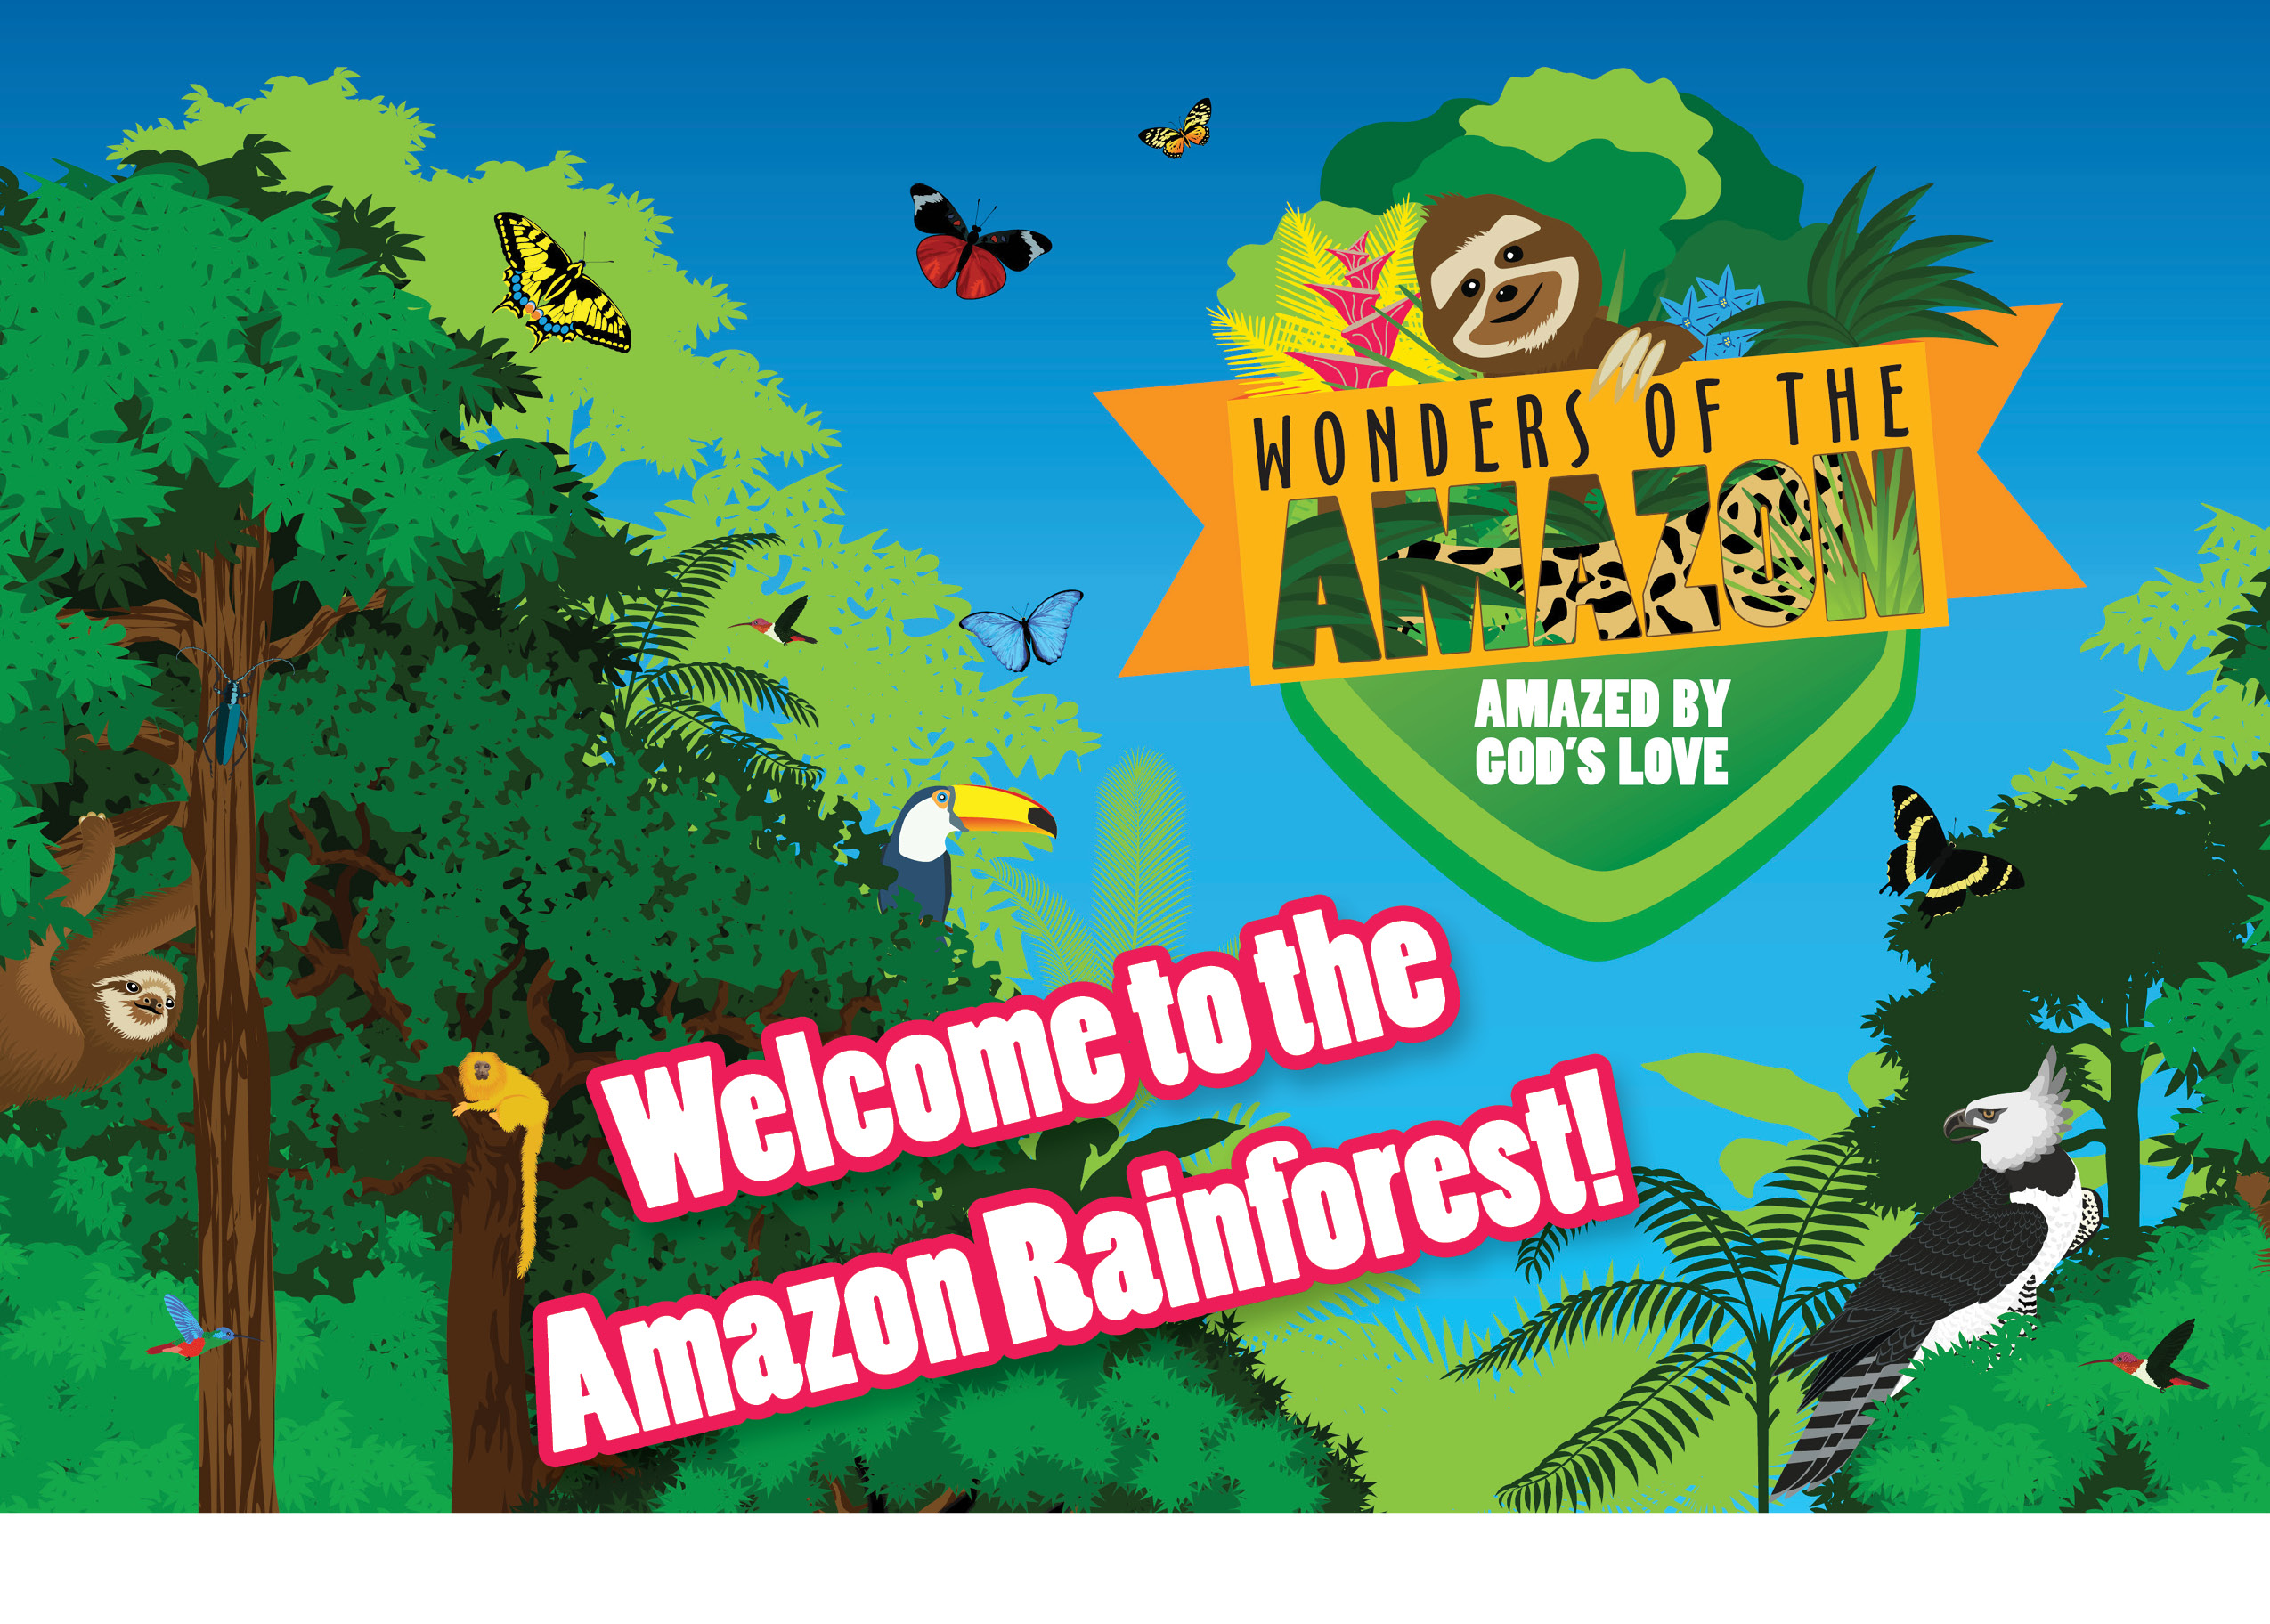 Welcome to the Amazon!